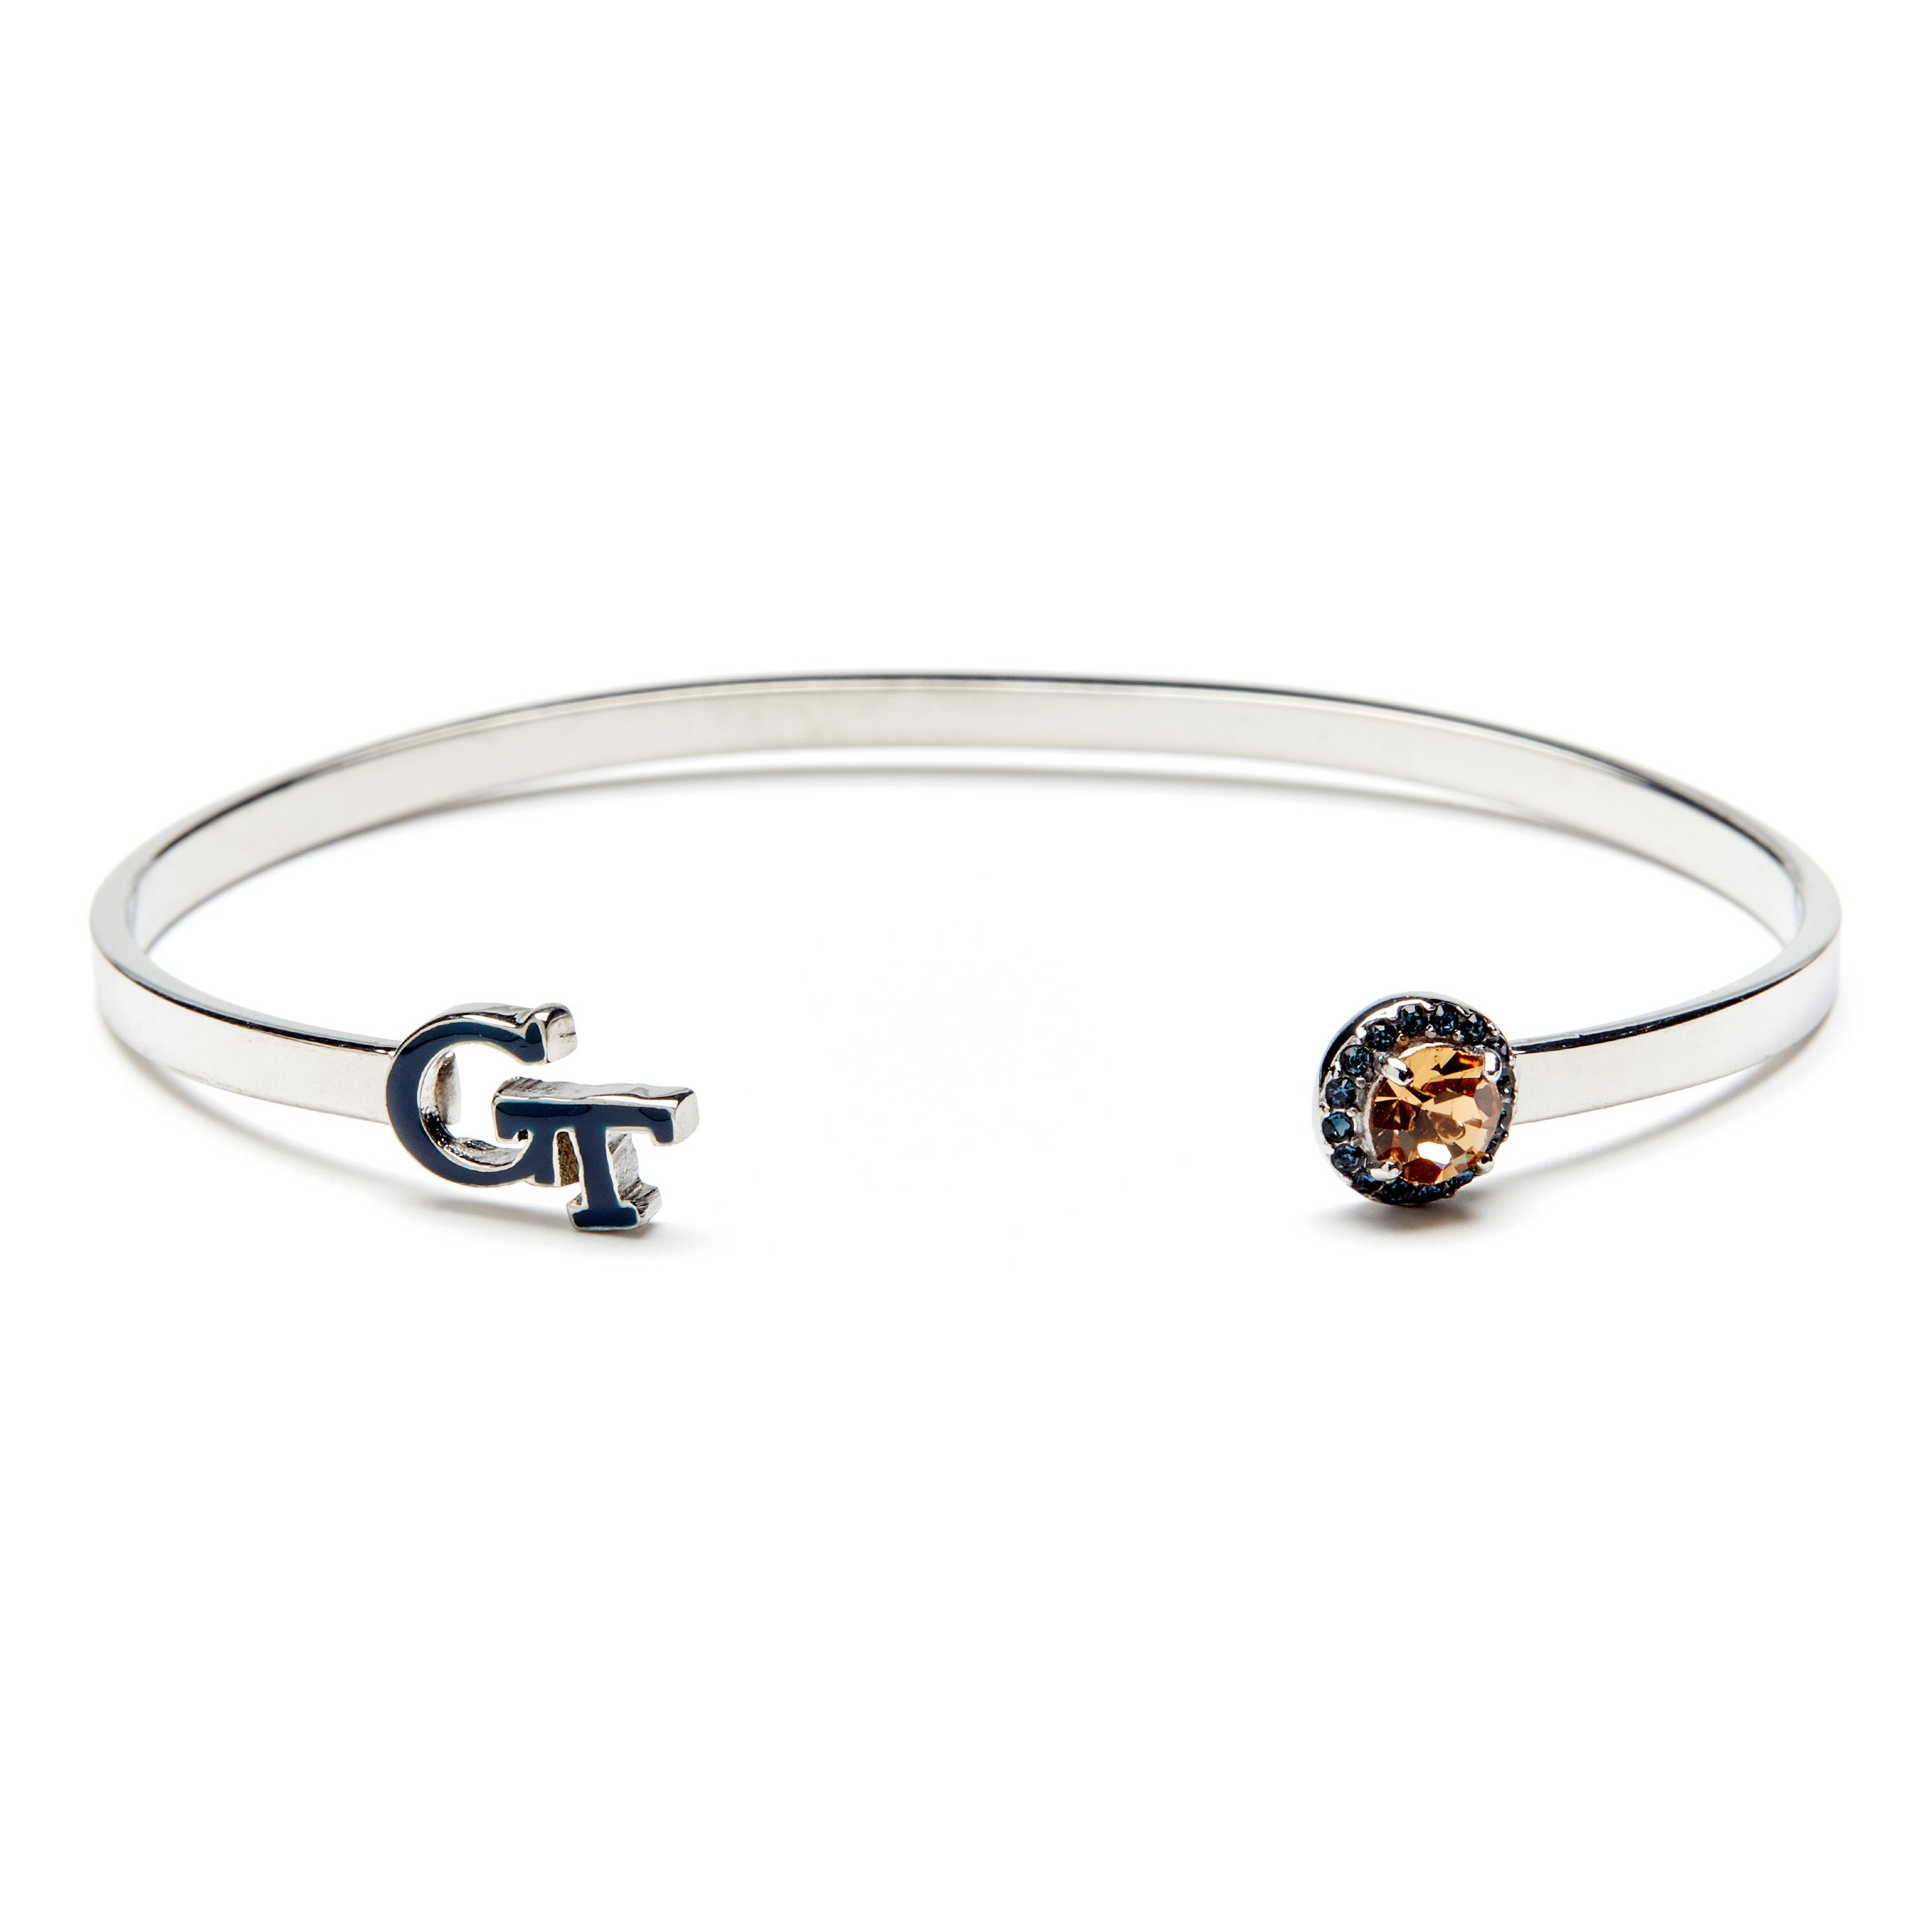 Georgia Tech Bangle   Blue GT and Crystals   Georgia Tech Gift   Officially Licensed Georgia Tech Jewelry